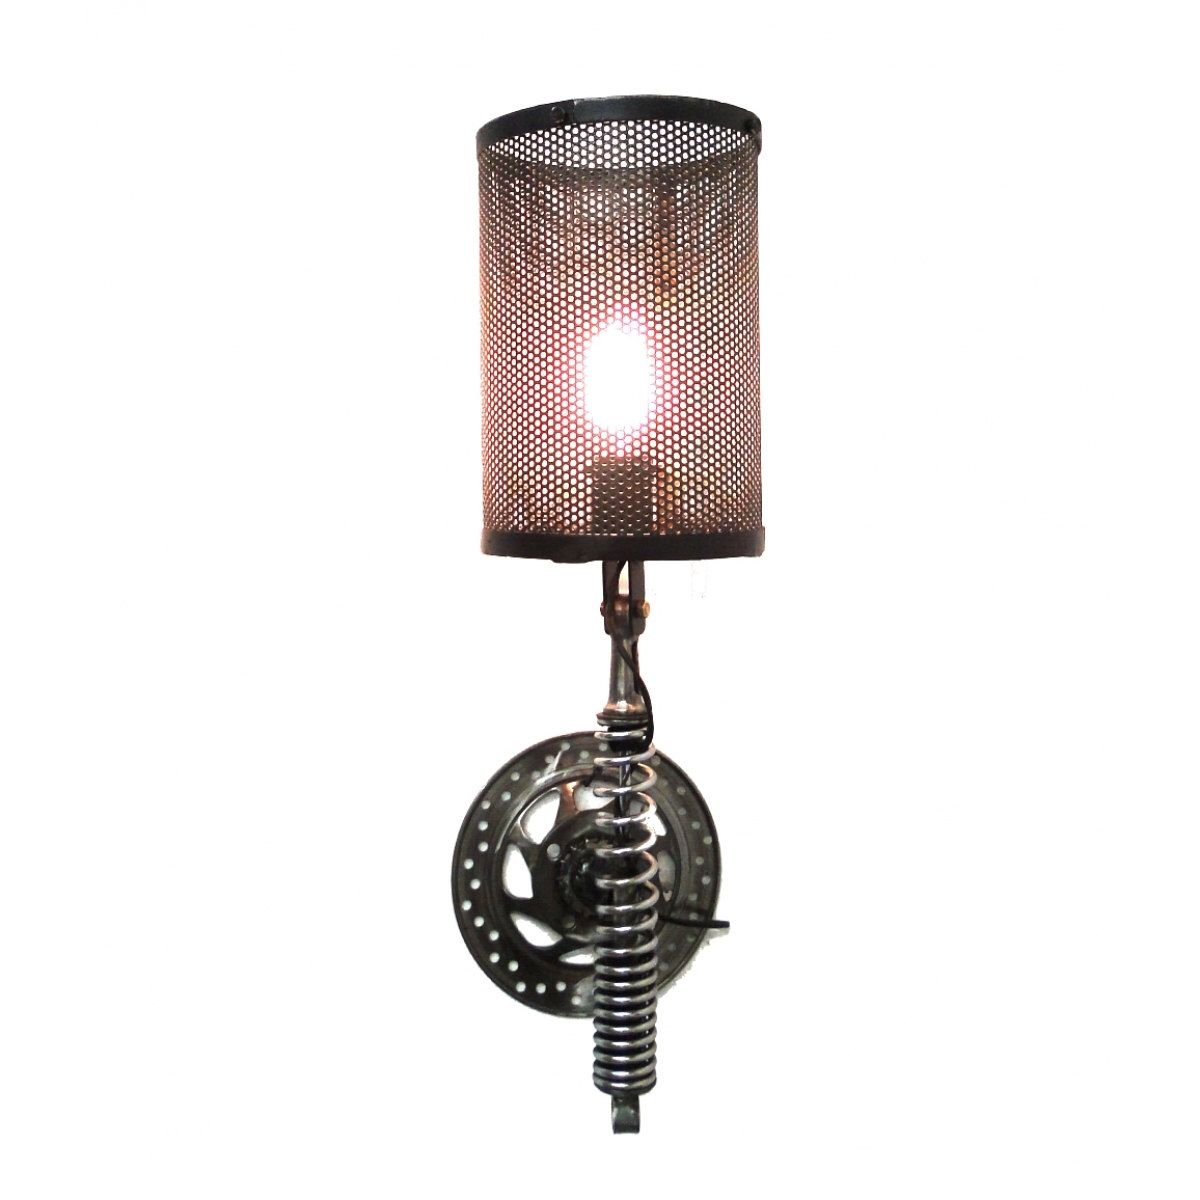 Wall Mount Motorcycle Clutch & Spring Sconce Light Fixture Antique ...